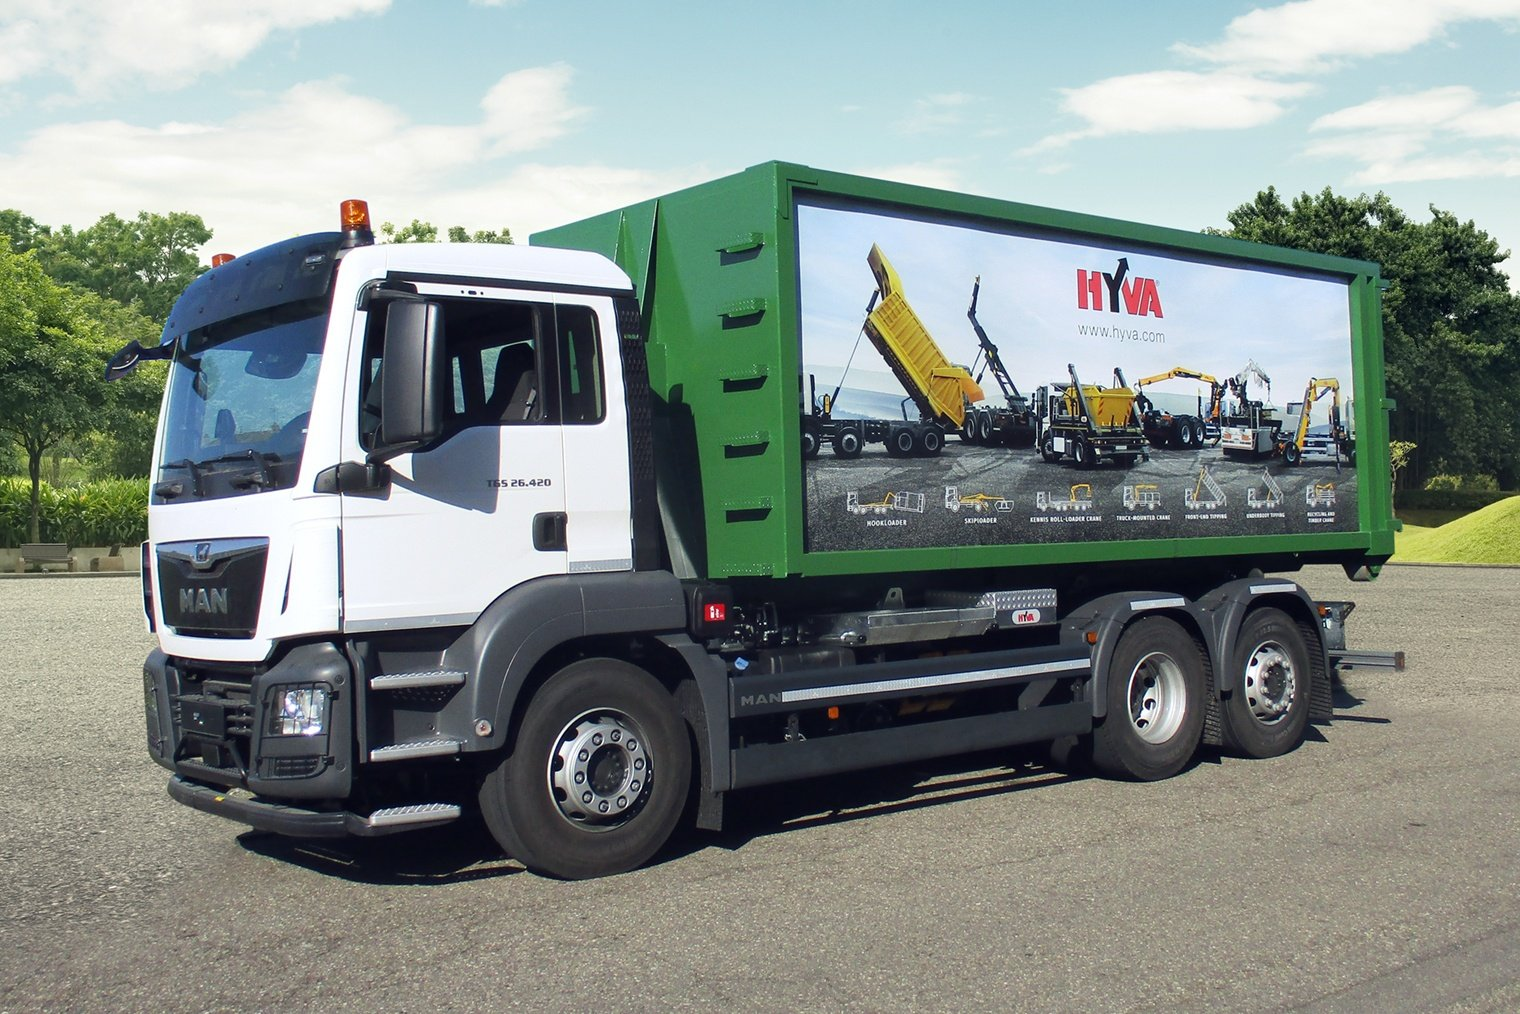 Hyva innovative transport solutions tipper trucks cranes cylinders graphic design marketing agency photoshop